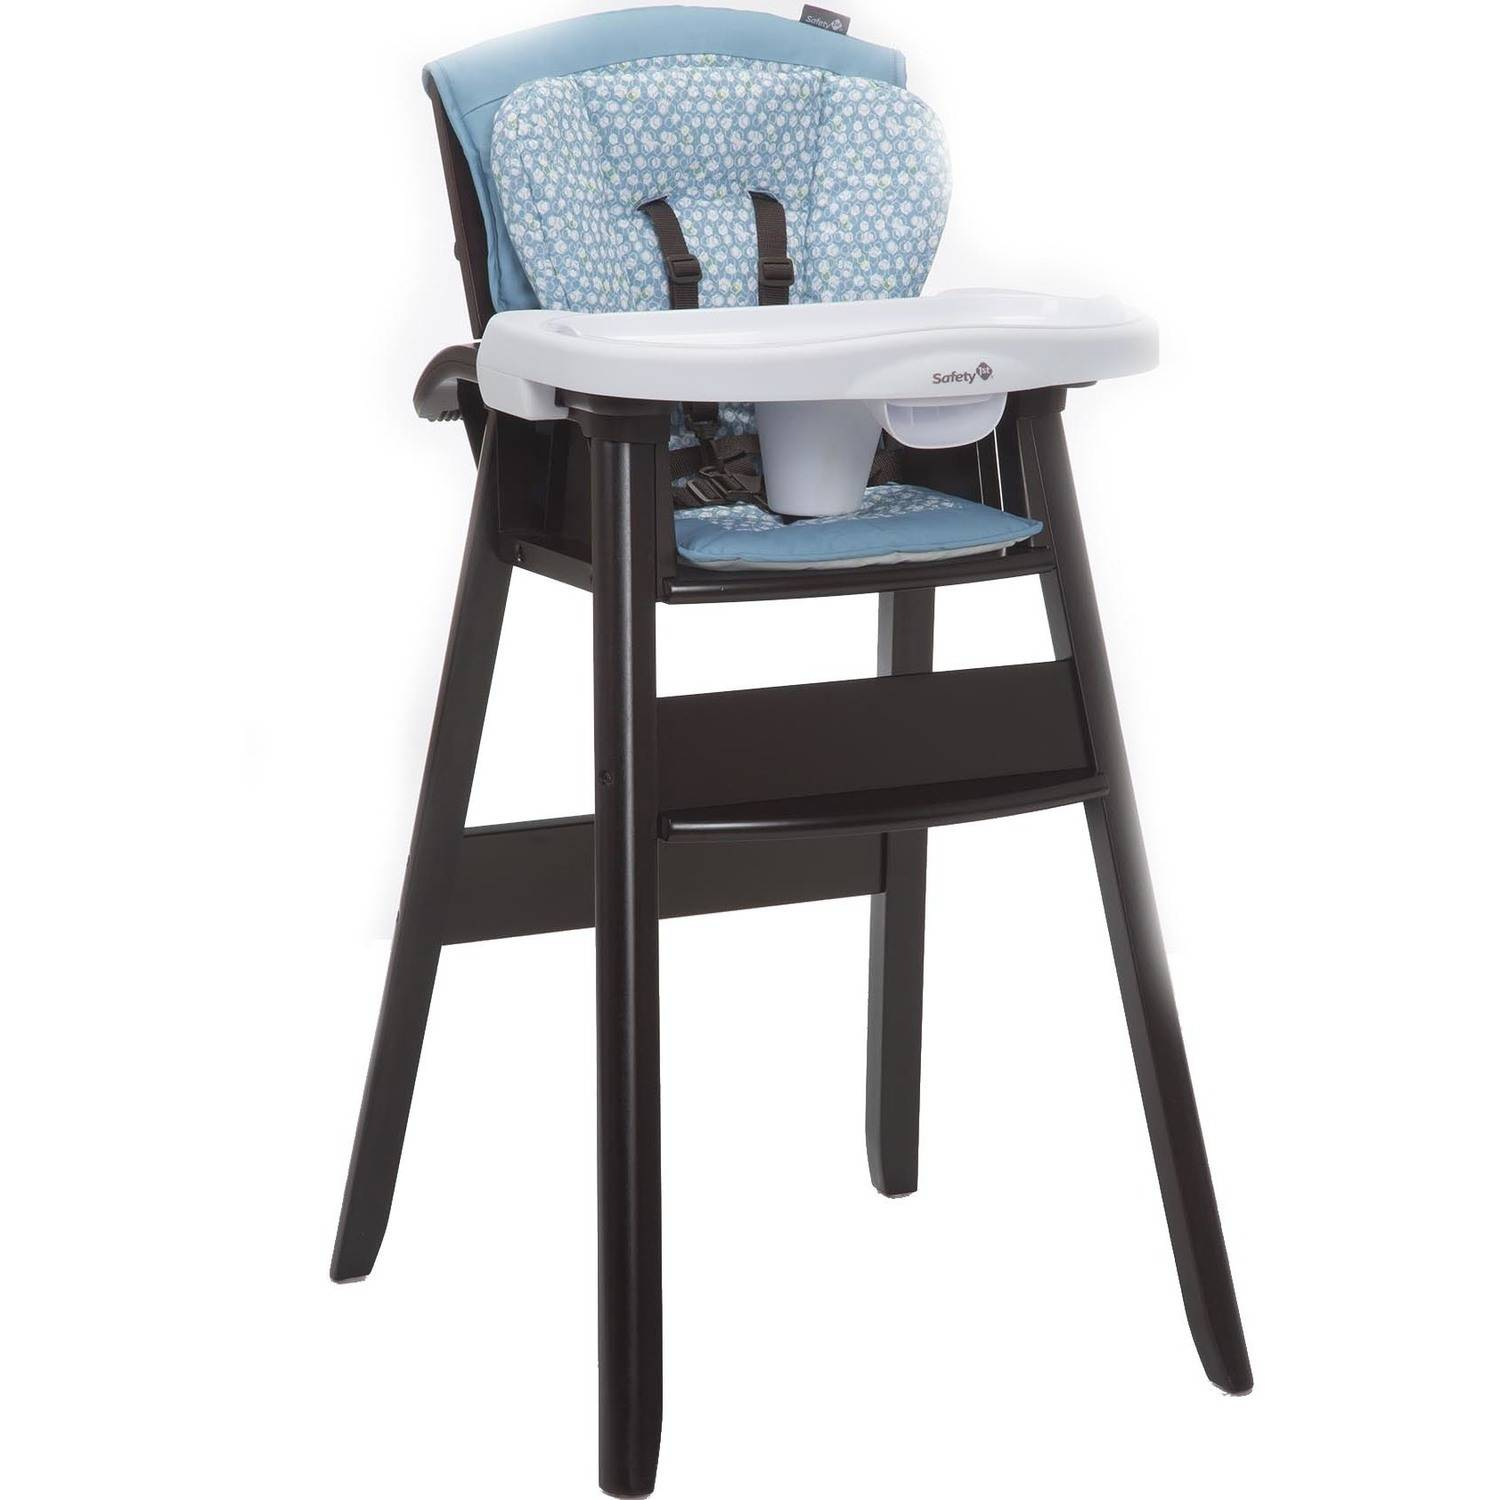 Safety 1st Dine and Recline Wood High Chair, Luminary by Safety 1st